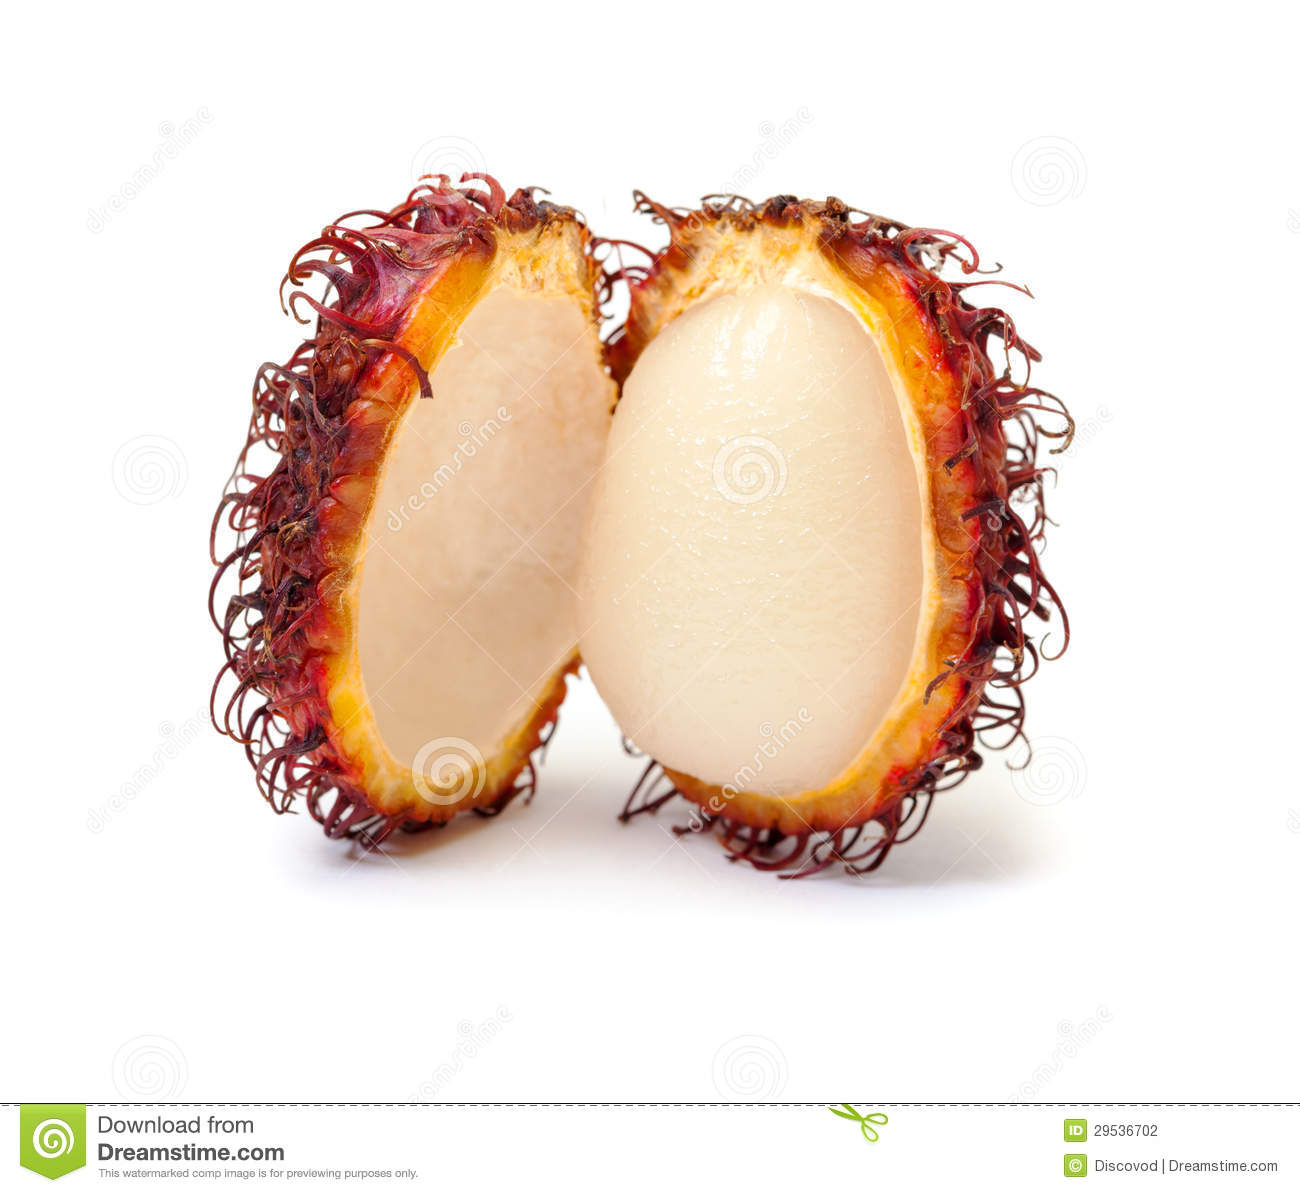 Rambutan, fruto tropical